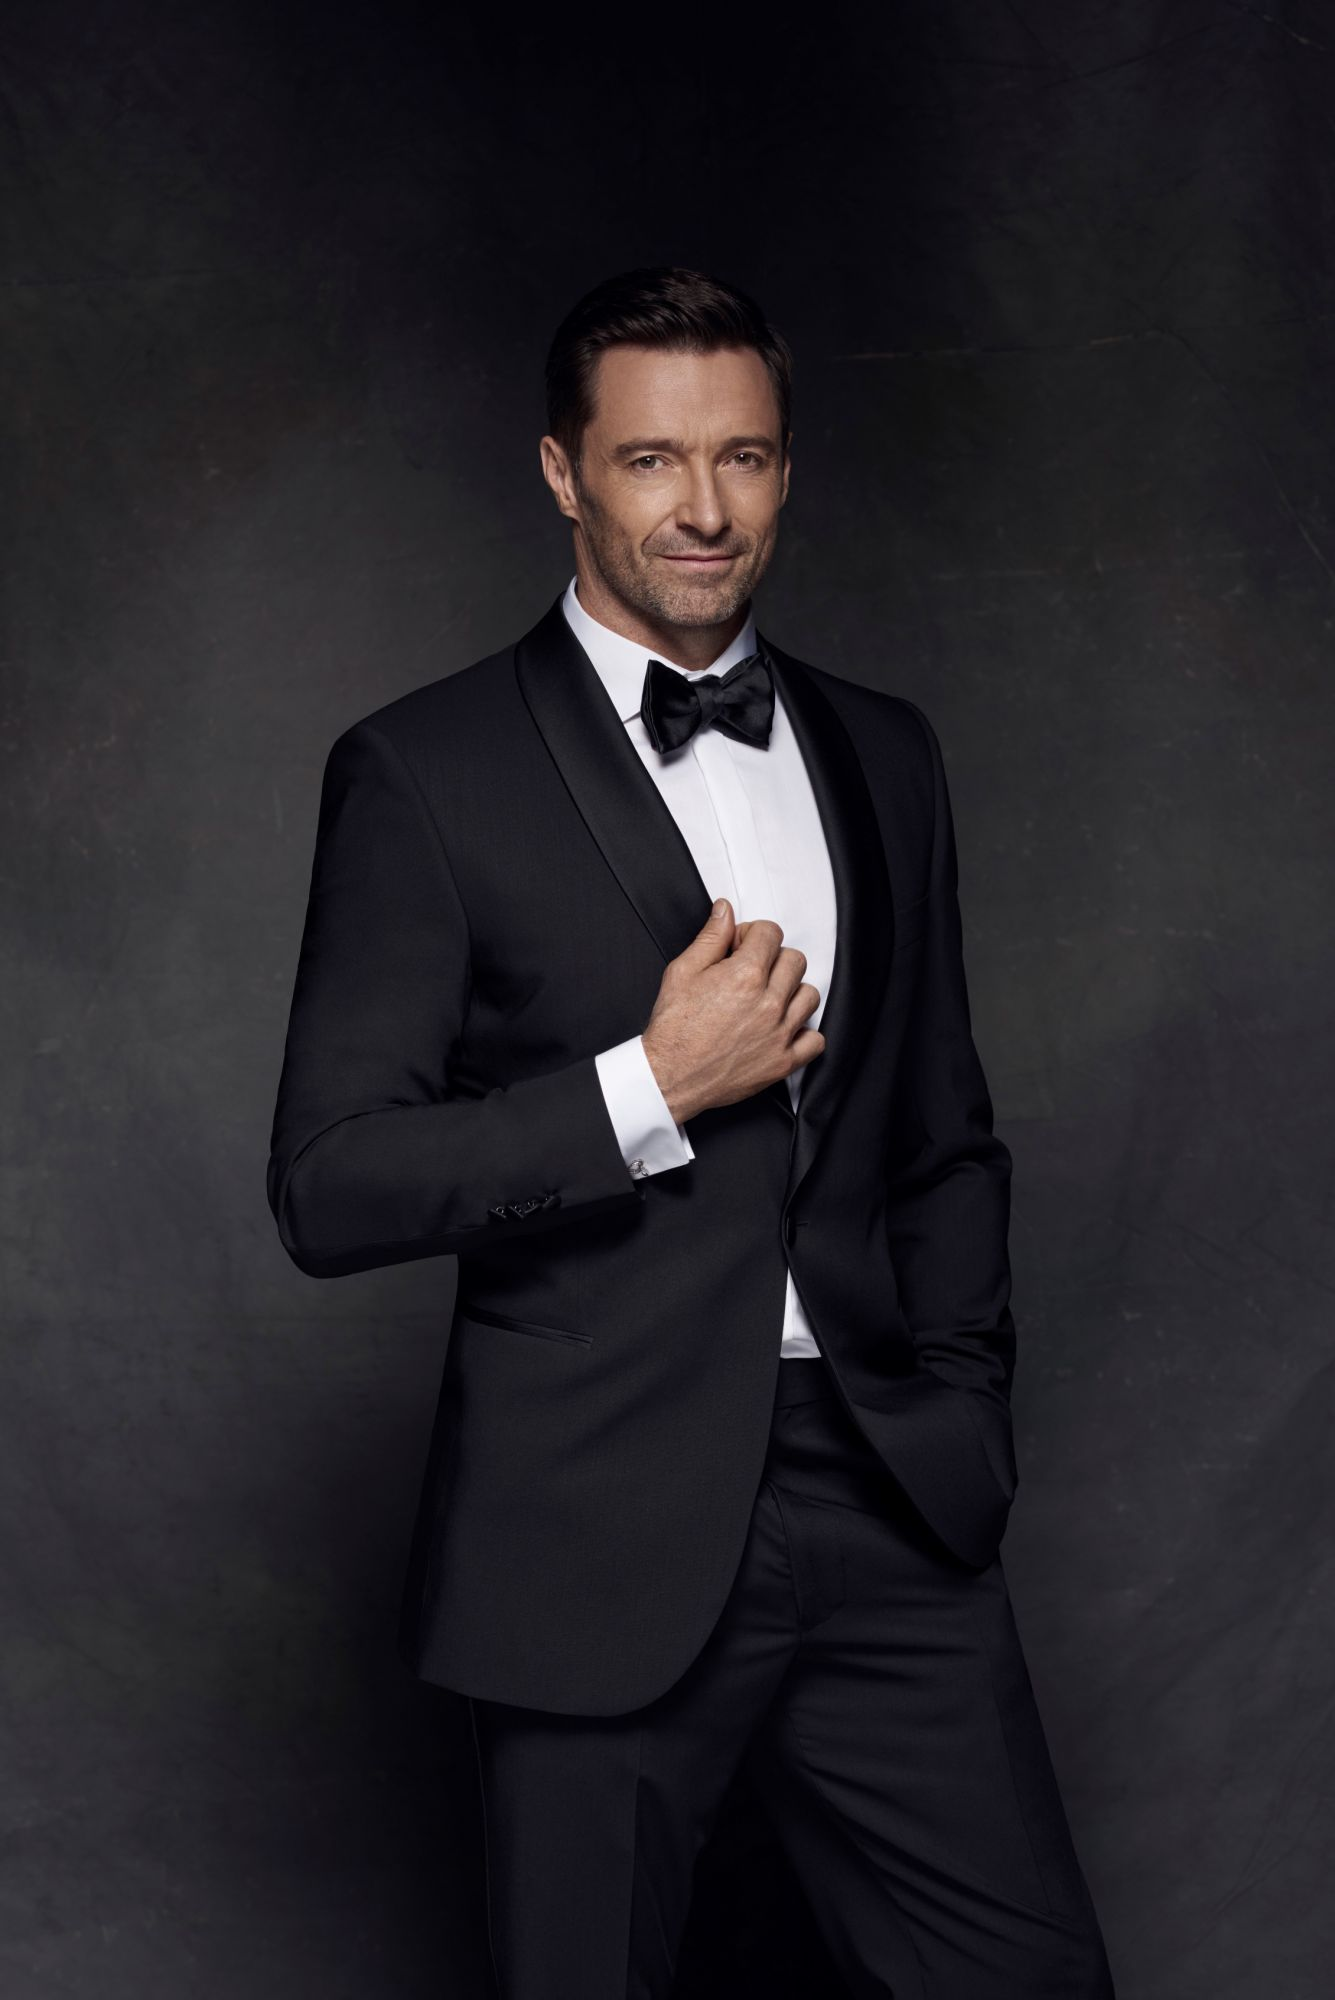 Hugh Jackman On The Greatest Showman, Montblanc And Being A Dad